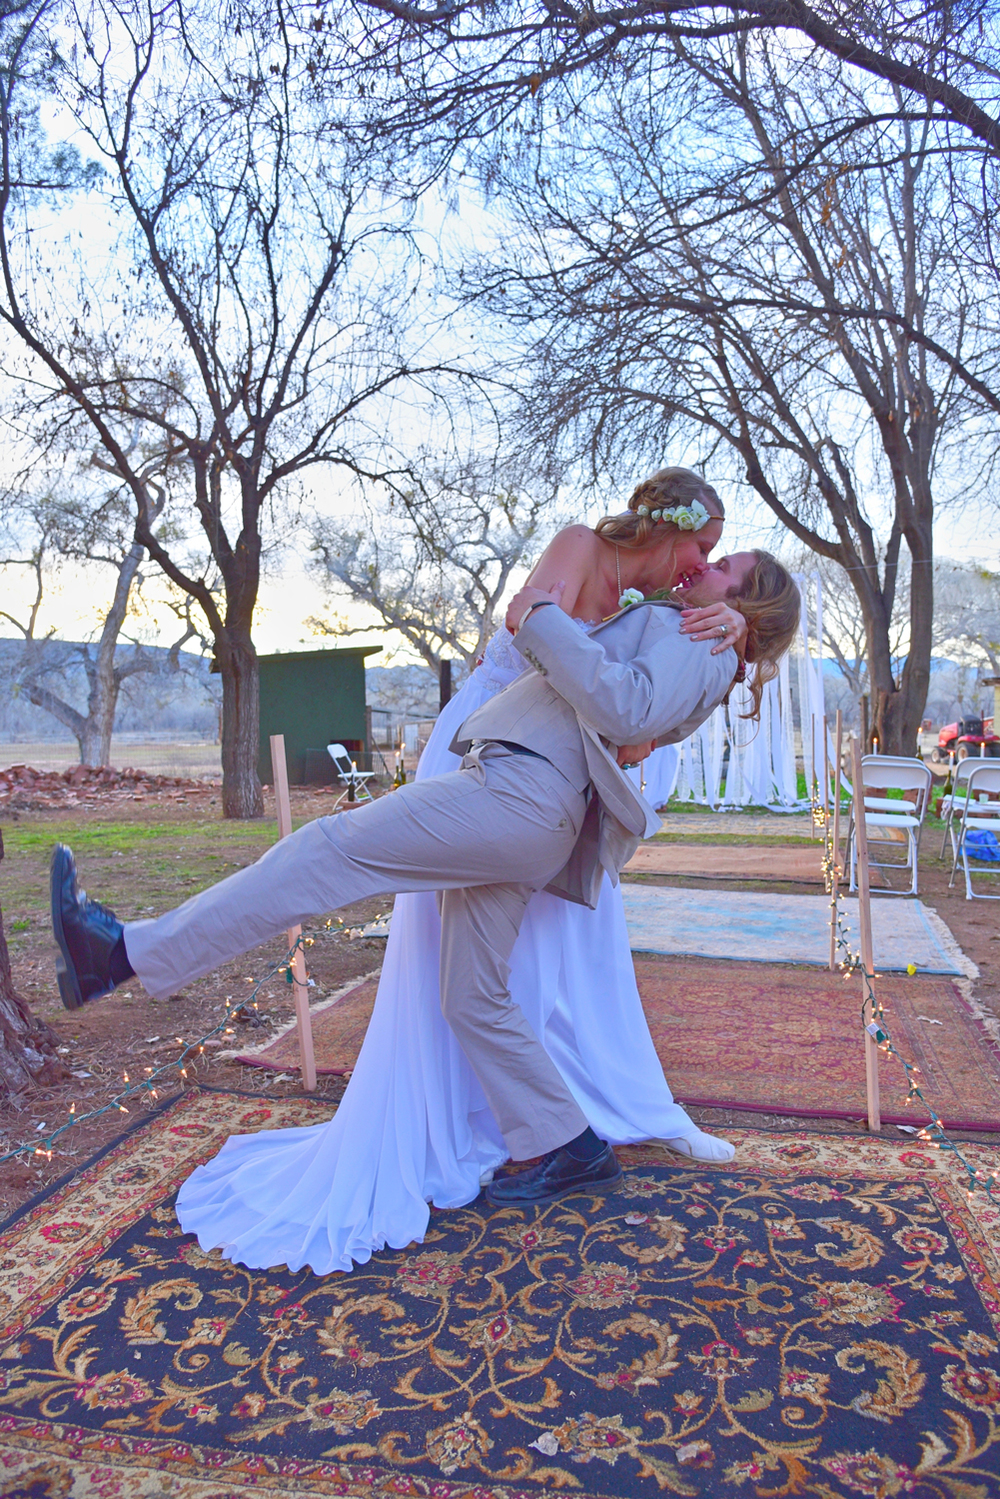 Weddings-Boho-Rugs-Arizona-Bride-Groom-Dip-Kiss_Carly-Carpenter.jpg